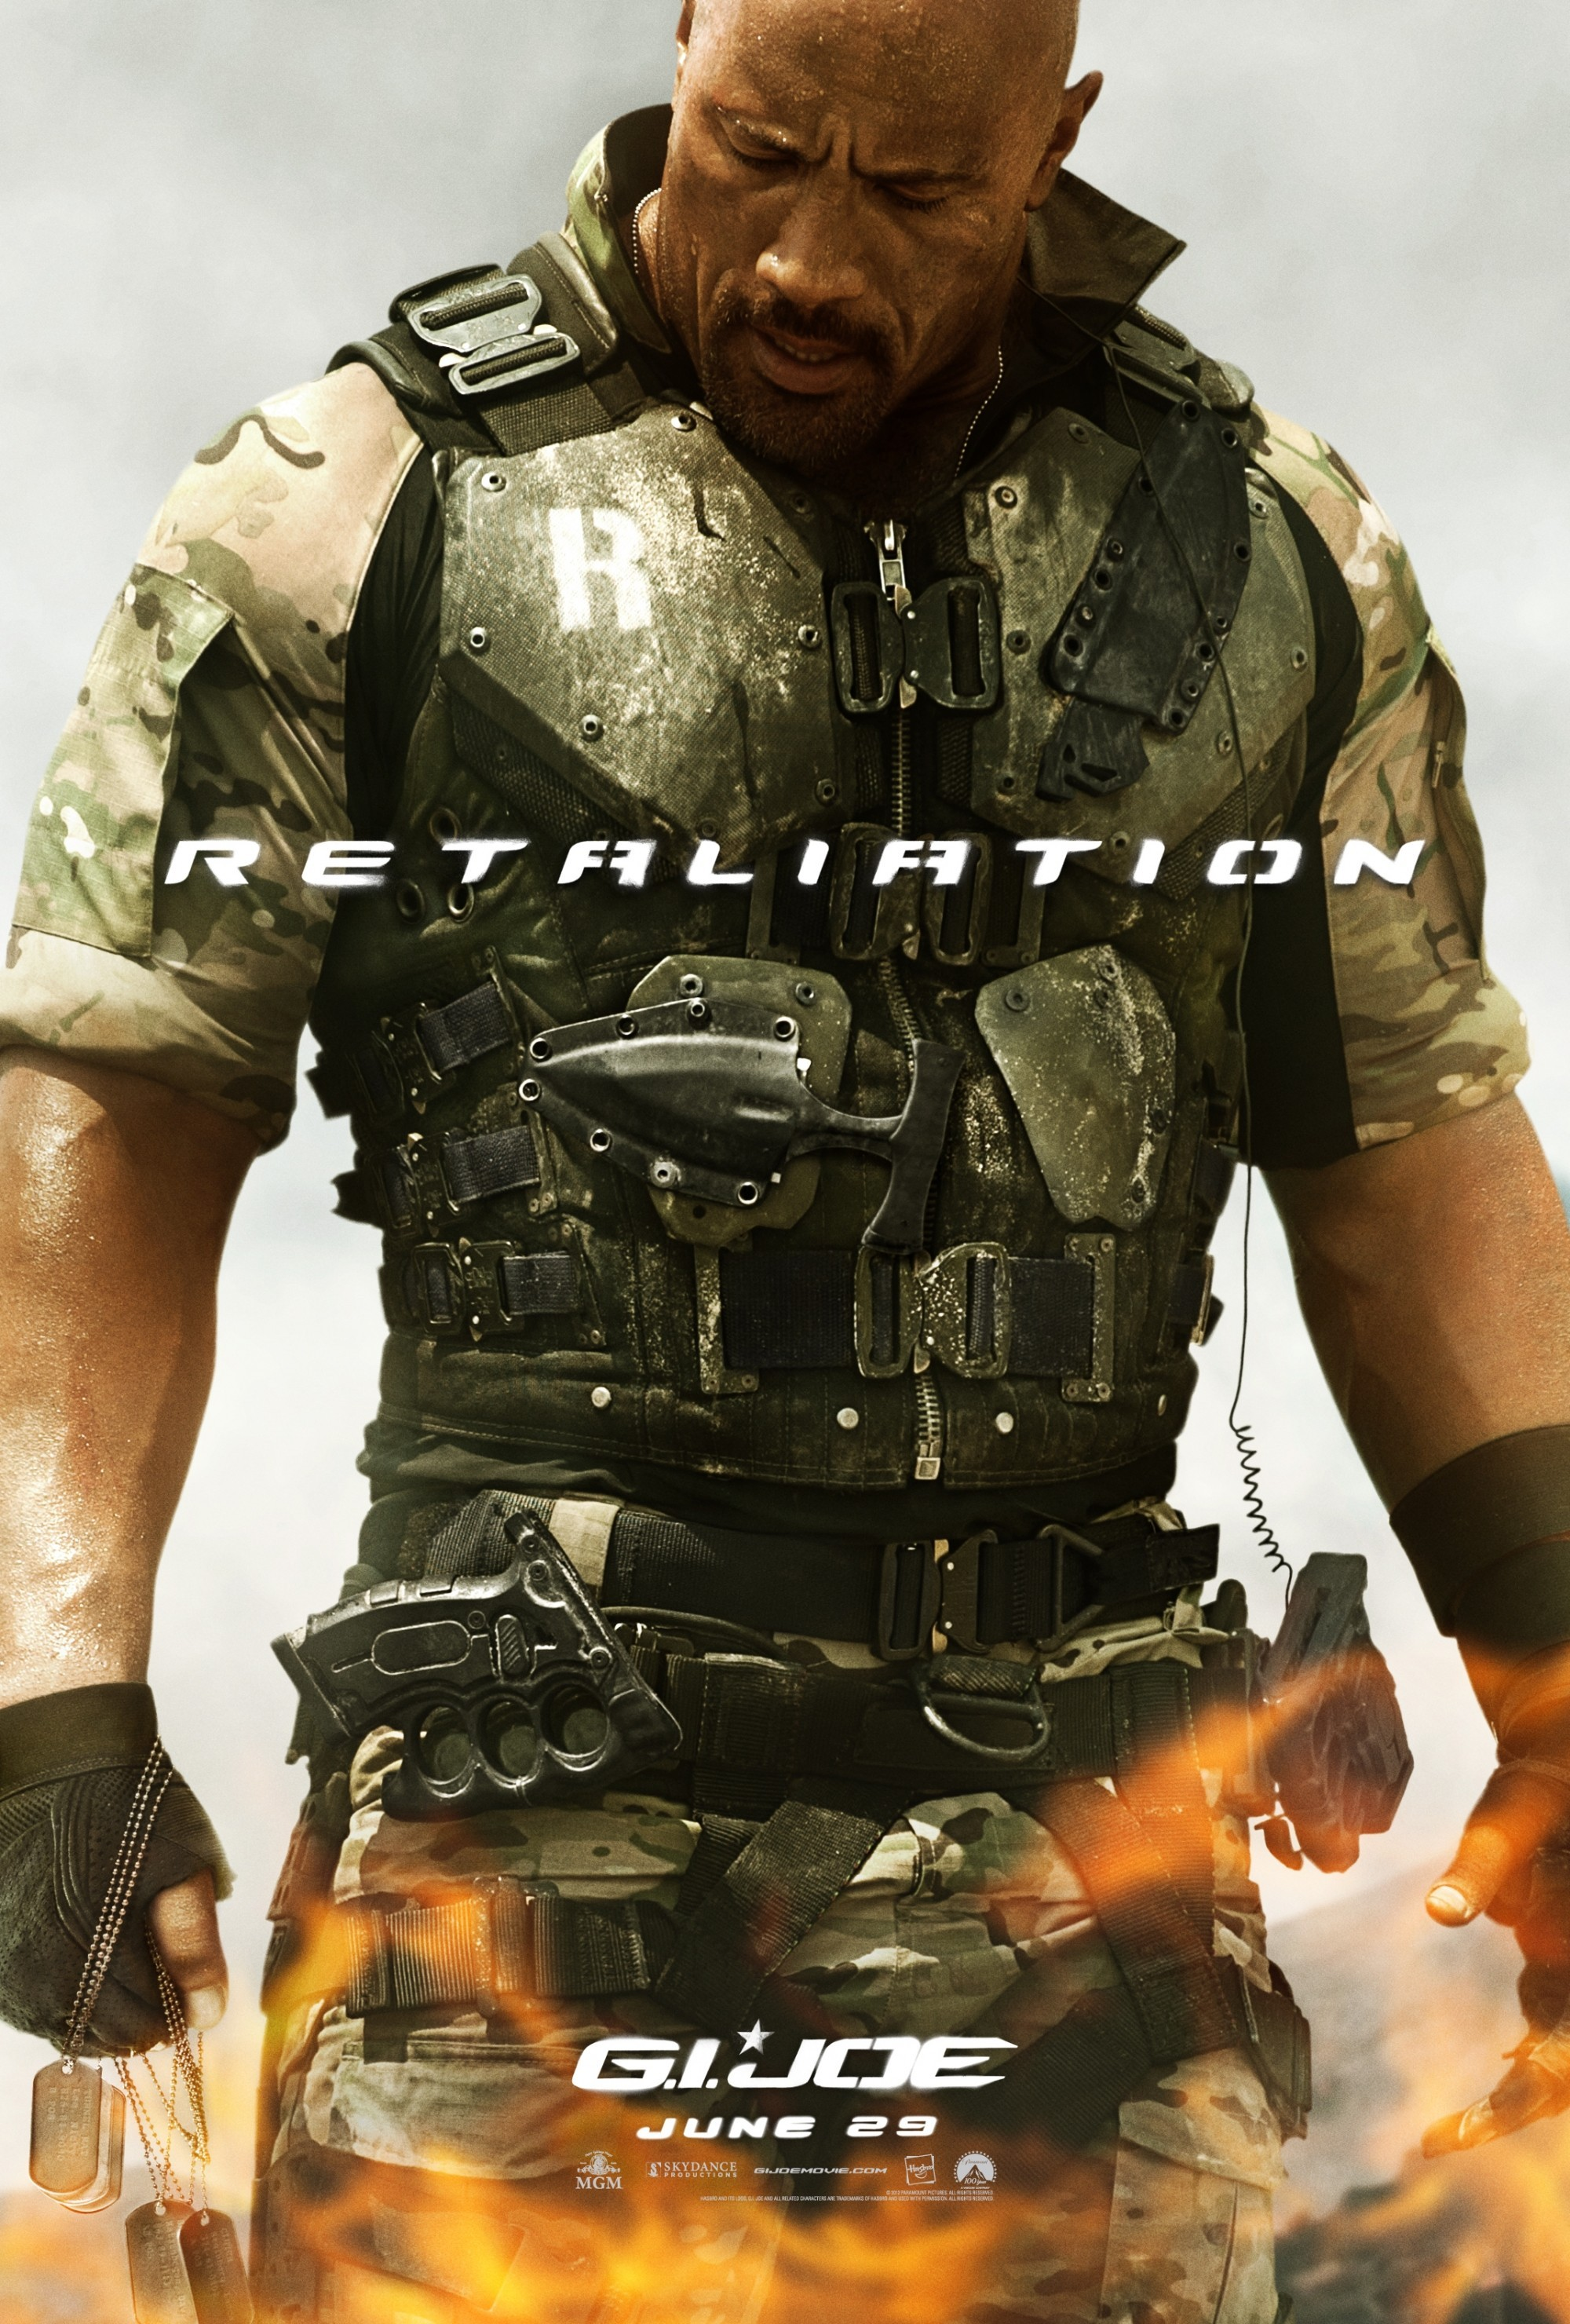 Movie Posters Dwayne Johnson Gi Joe Retaliation Wallpaper